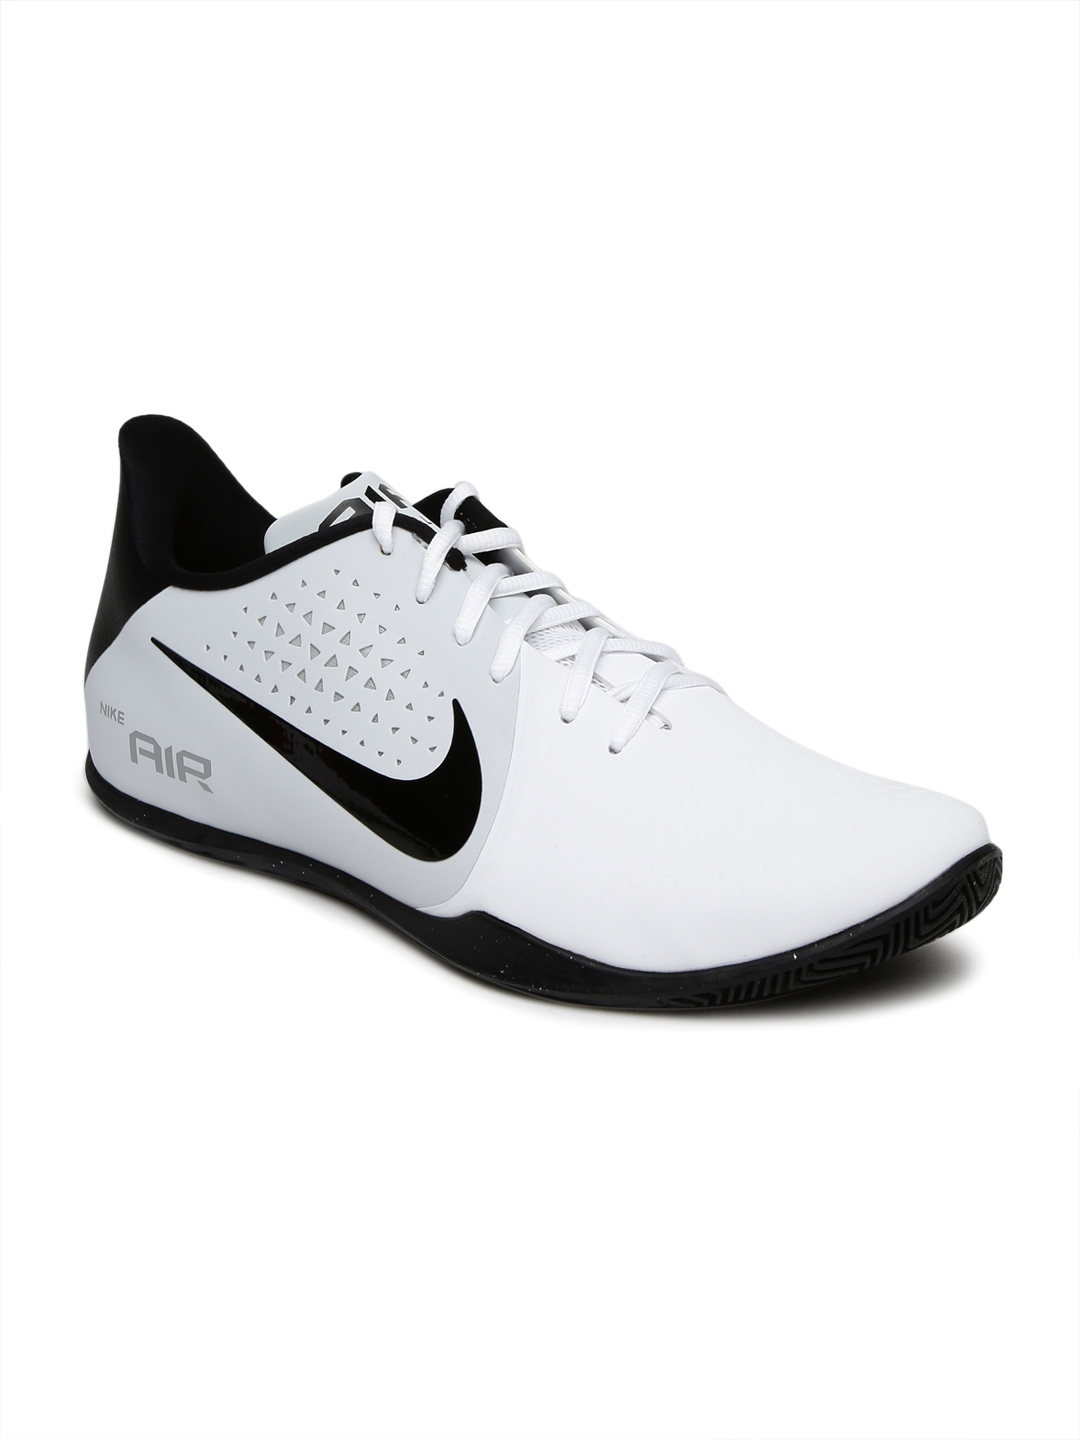 6f474ebafc4 11493284429823-Nike-Men-White--Black-Air-Behold-Low-Basketball-Shoes-241493284429706-1.jpg